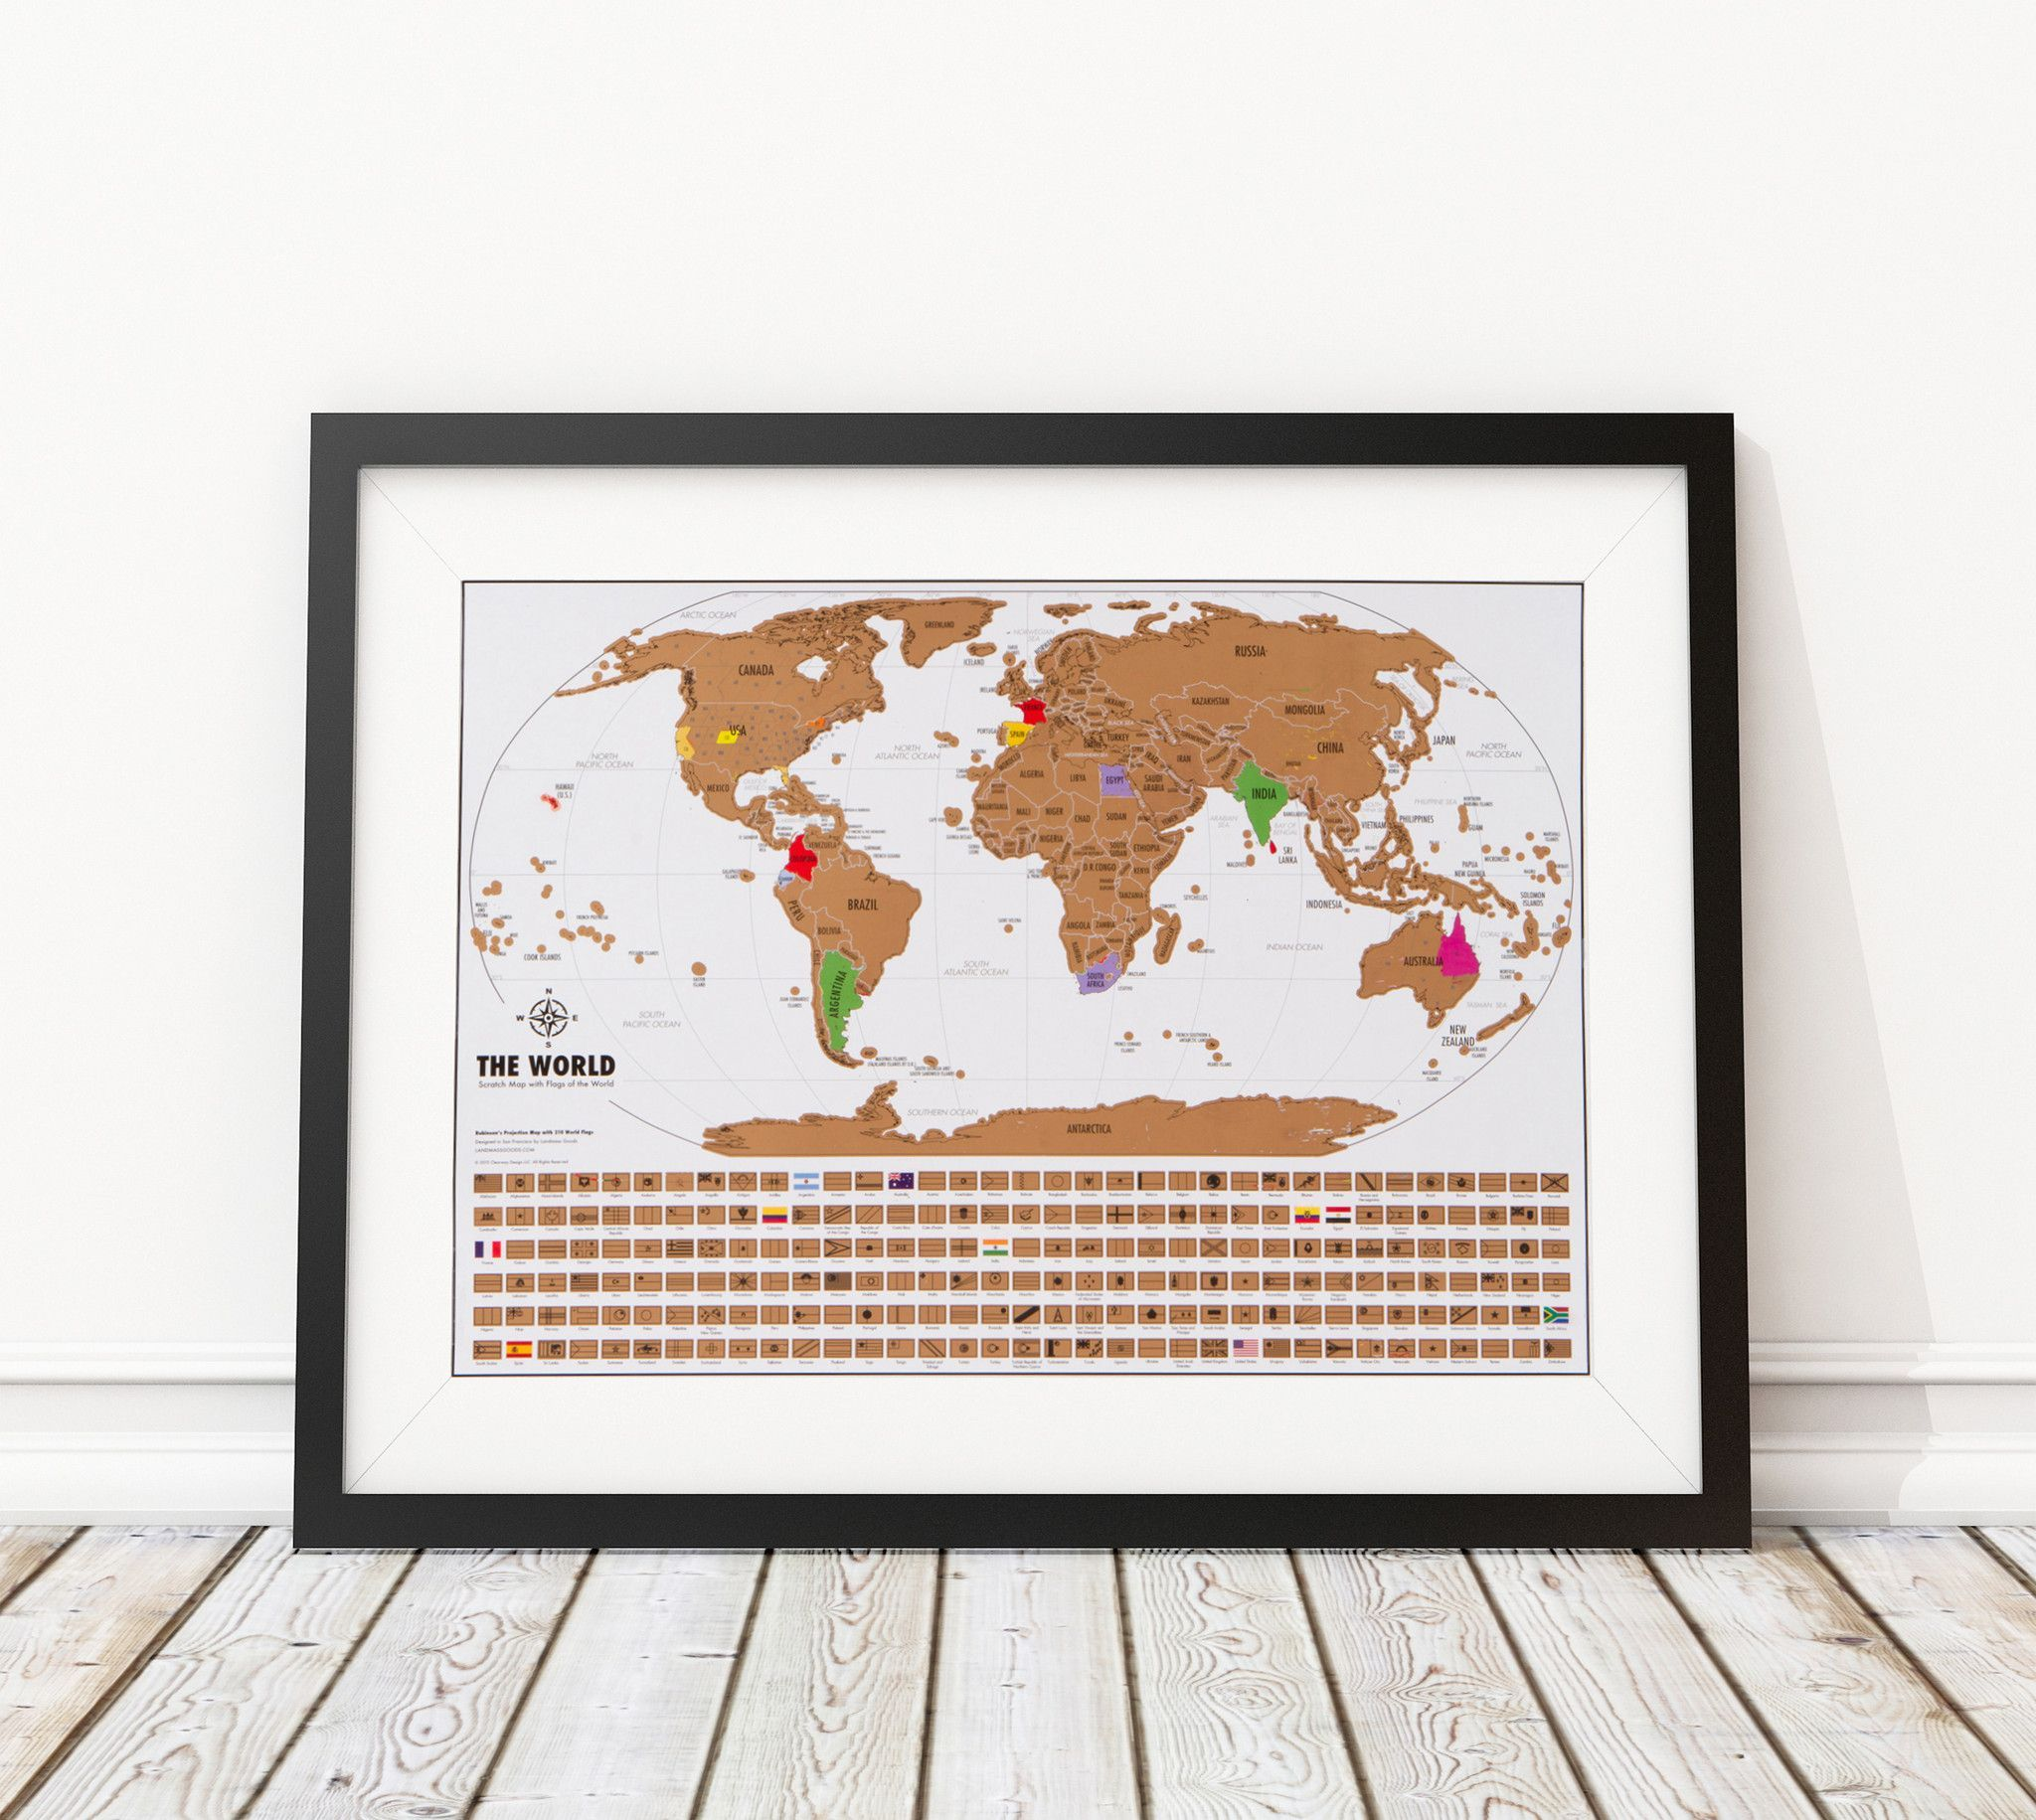 Scratch off world map with gold foil world travel tracker map scratch off world map with gold foil world travel tracker map gumiabroncs Images